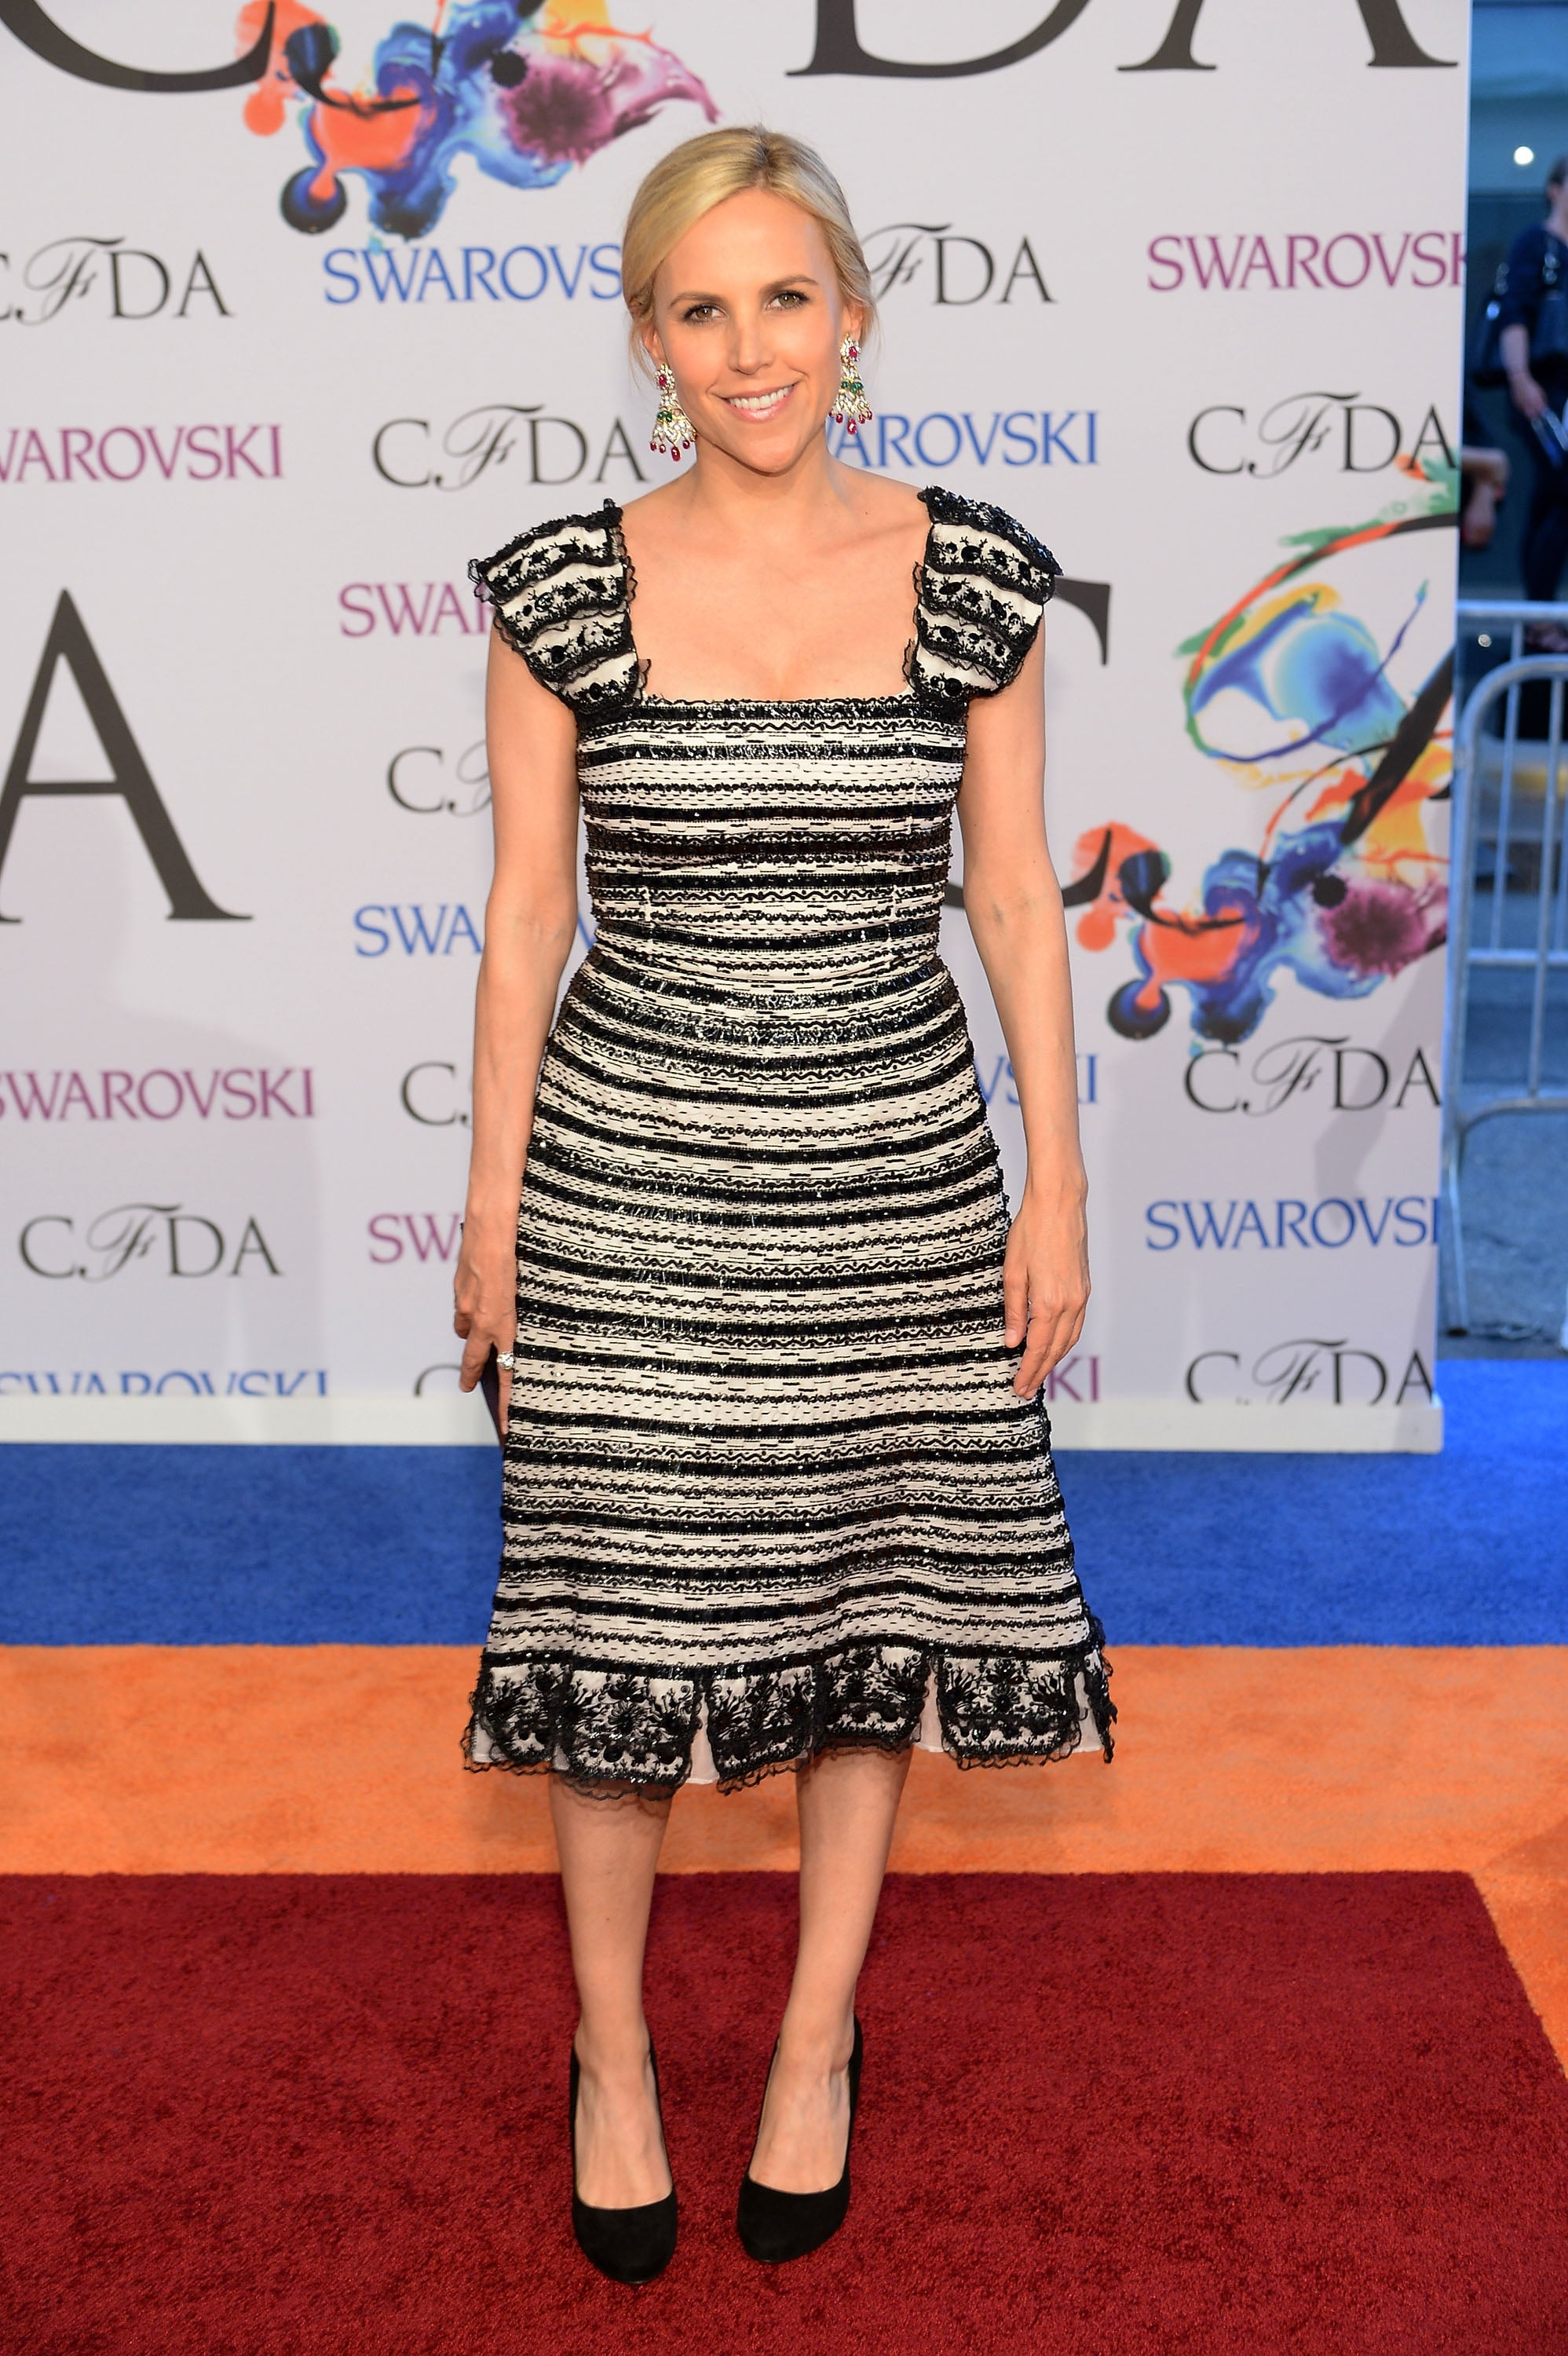 Tory Burch at the 2014 CFDA Awards